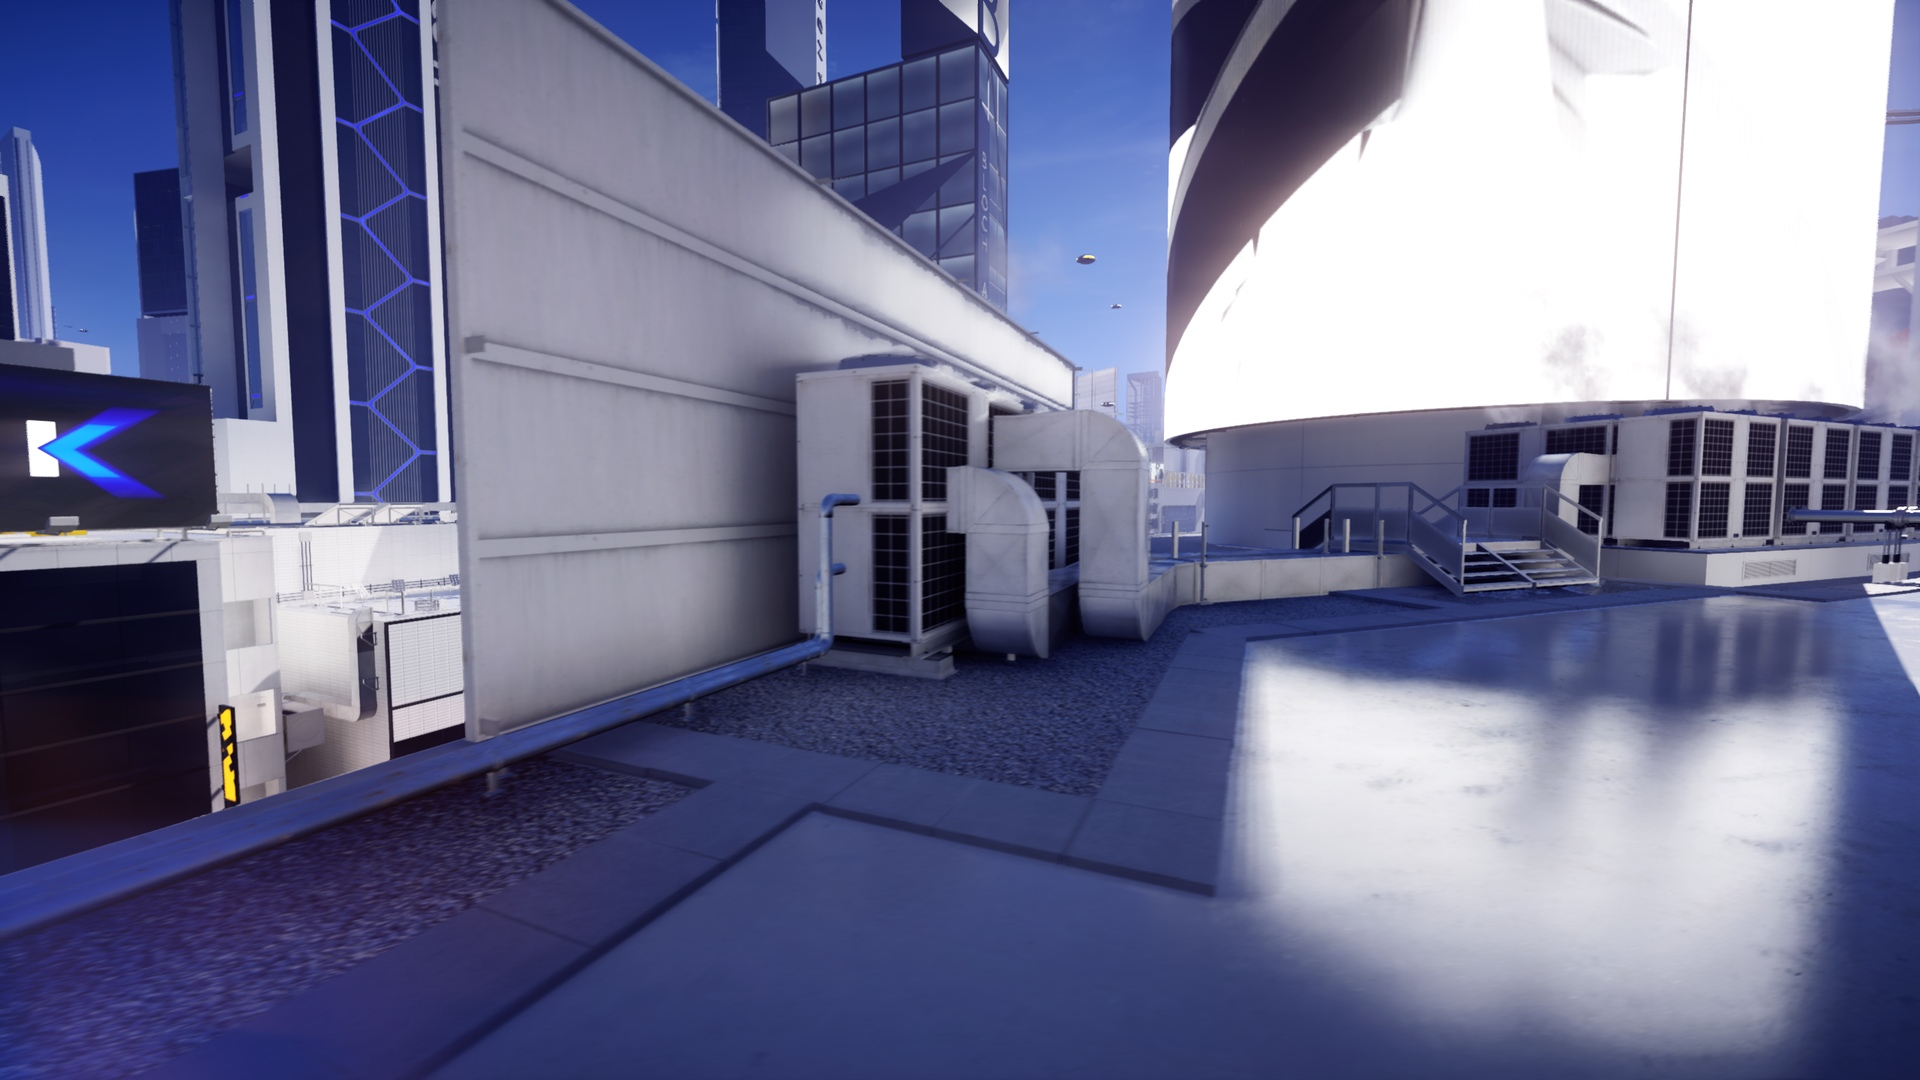 MirrorsEdgeCatalyst-Screen-Space-Reflections-30-Fps-pcgh